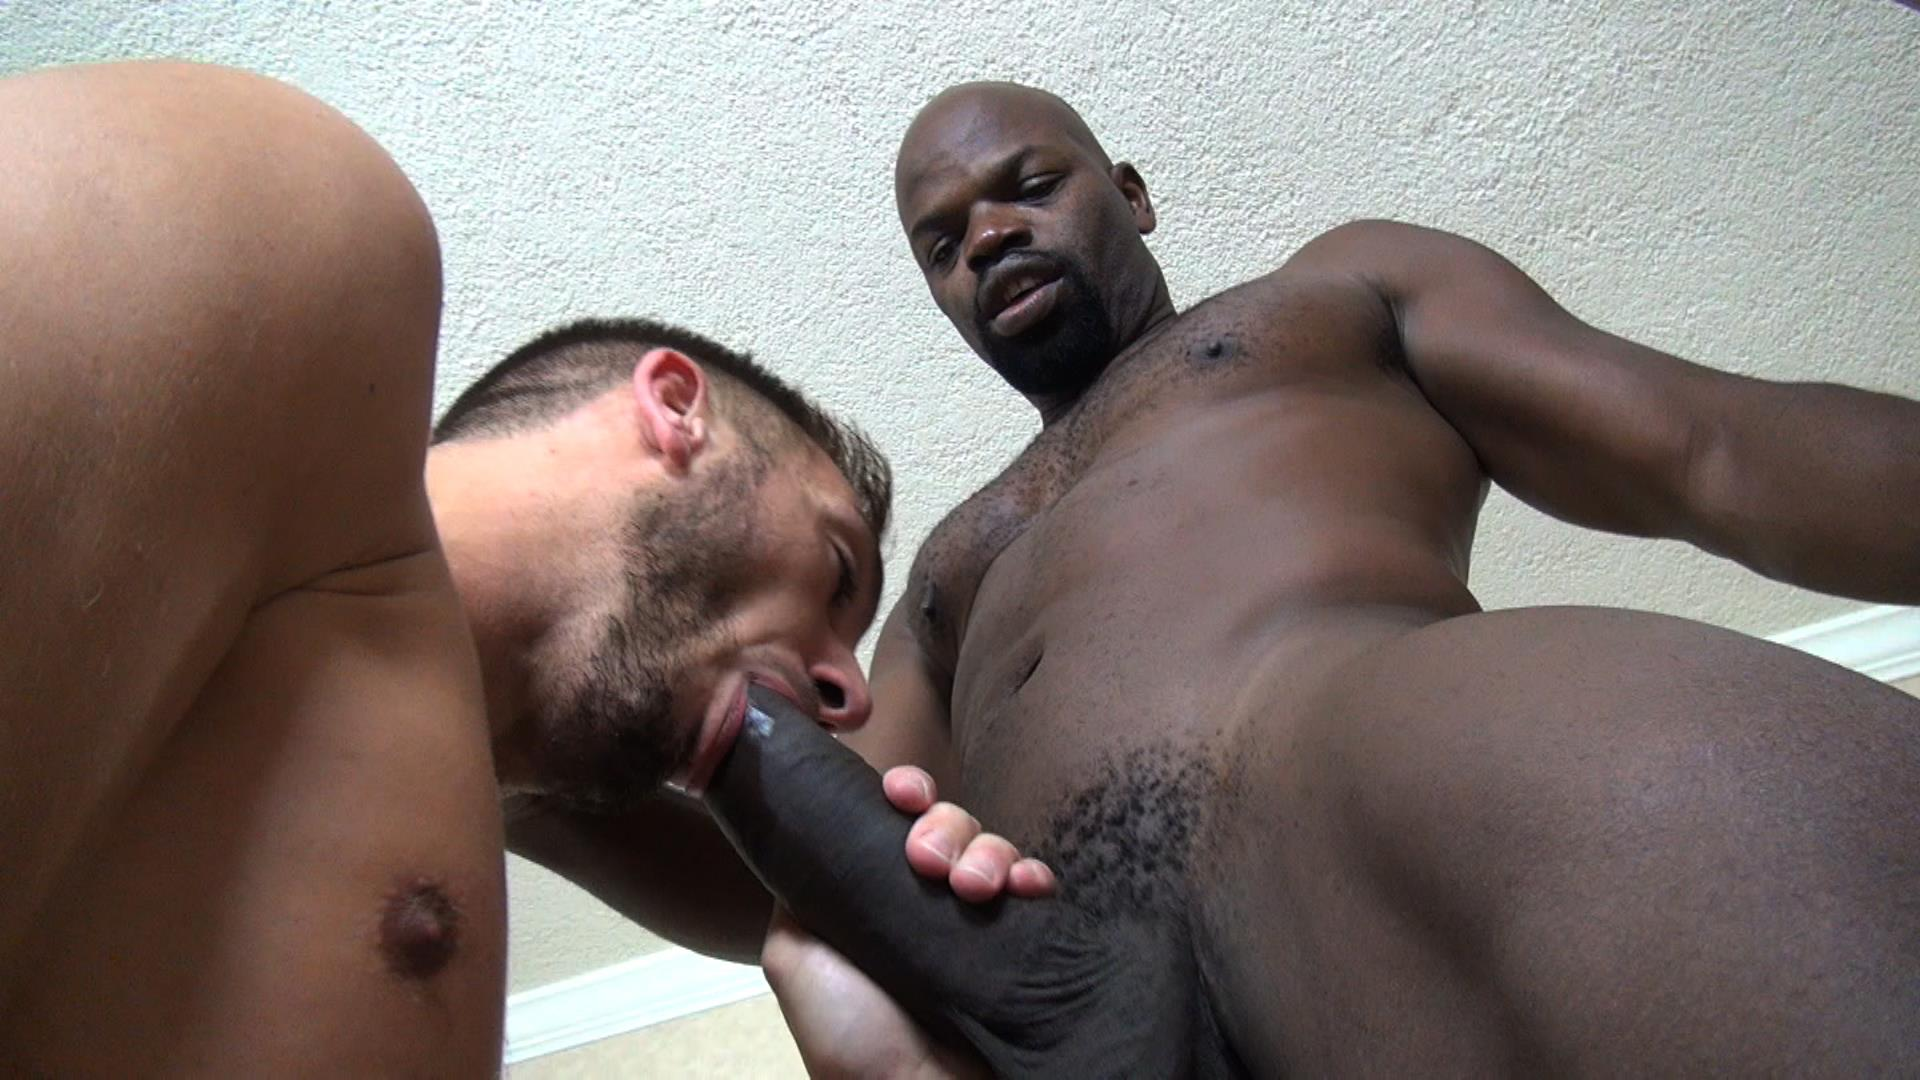 Gay black man seeking gay white man